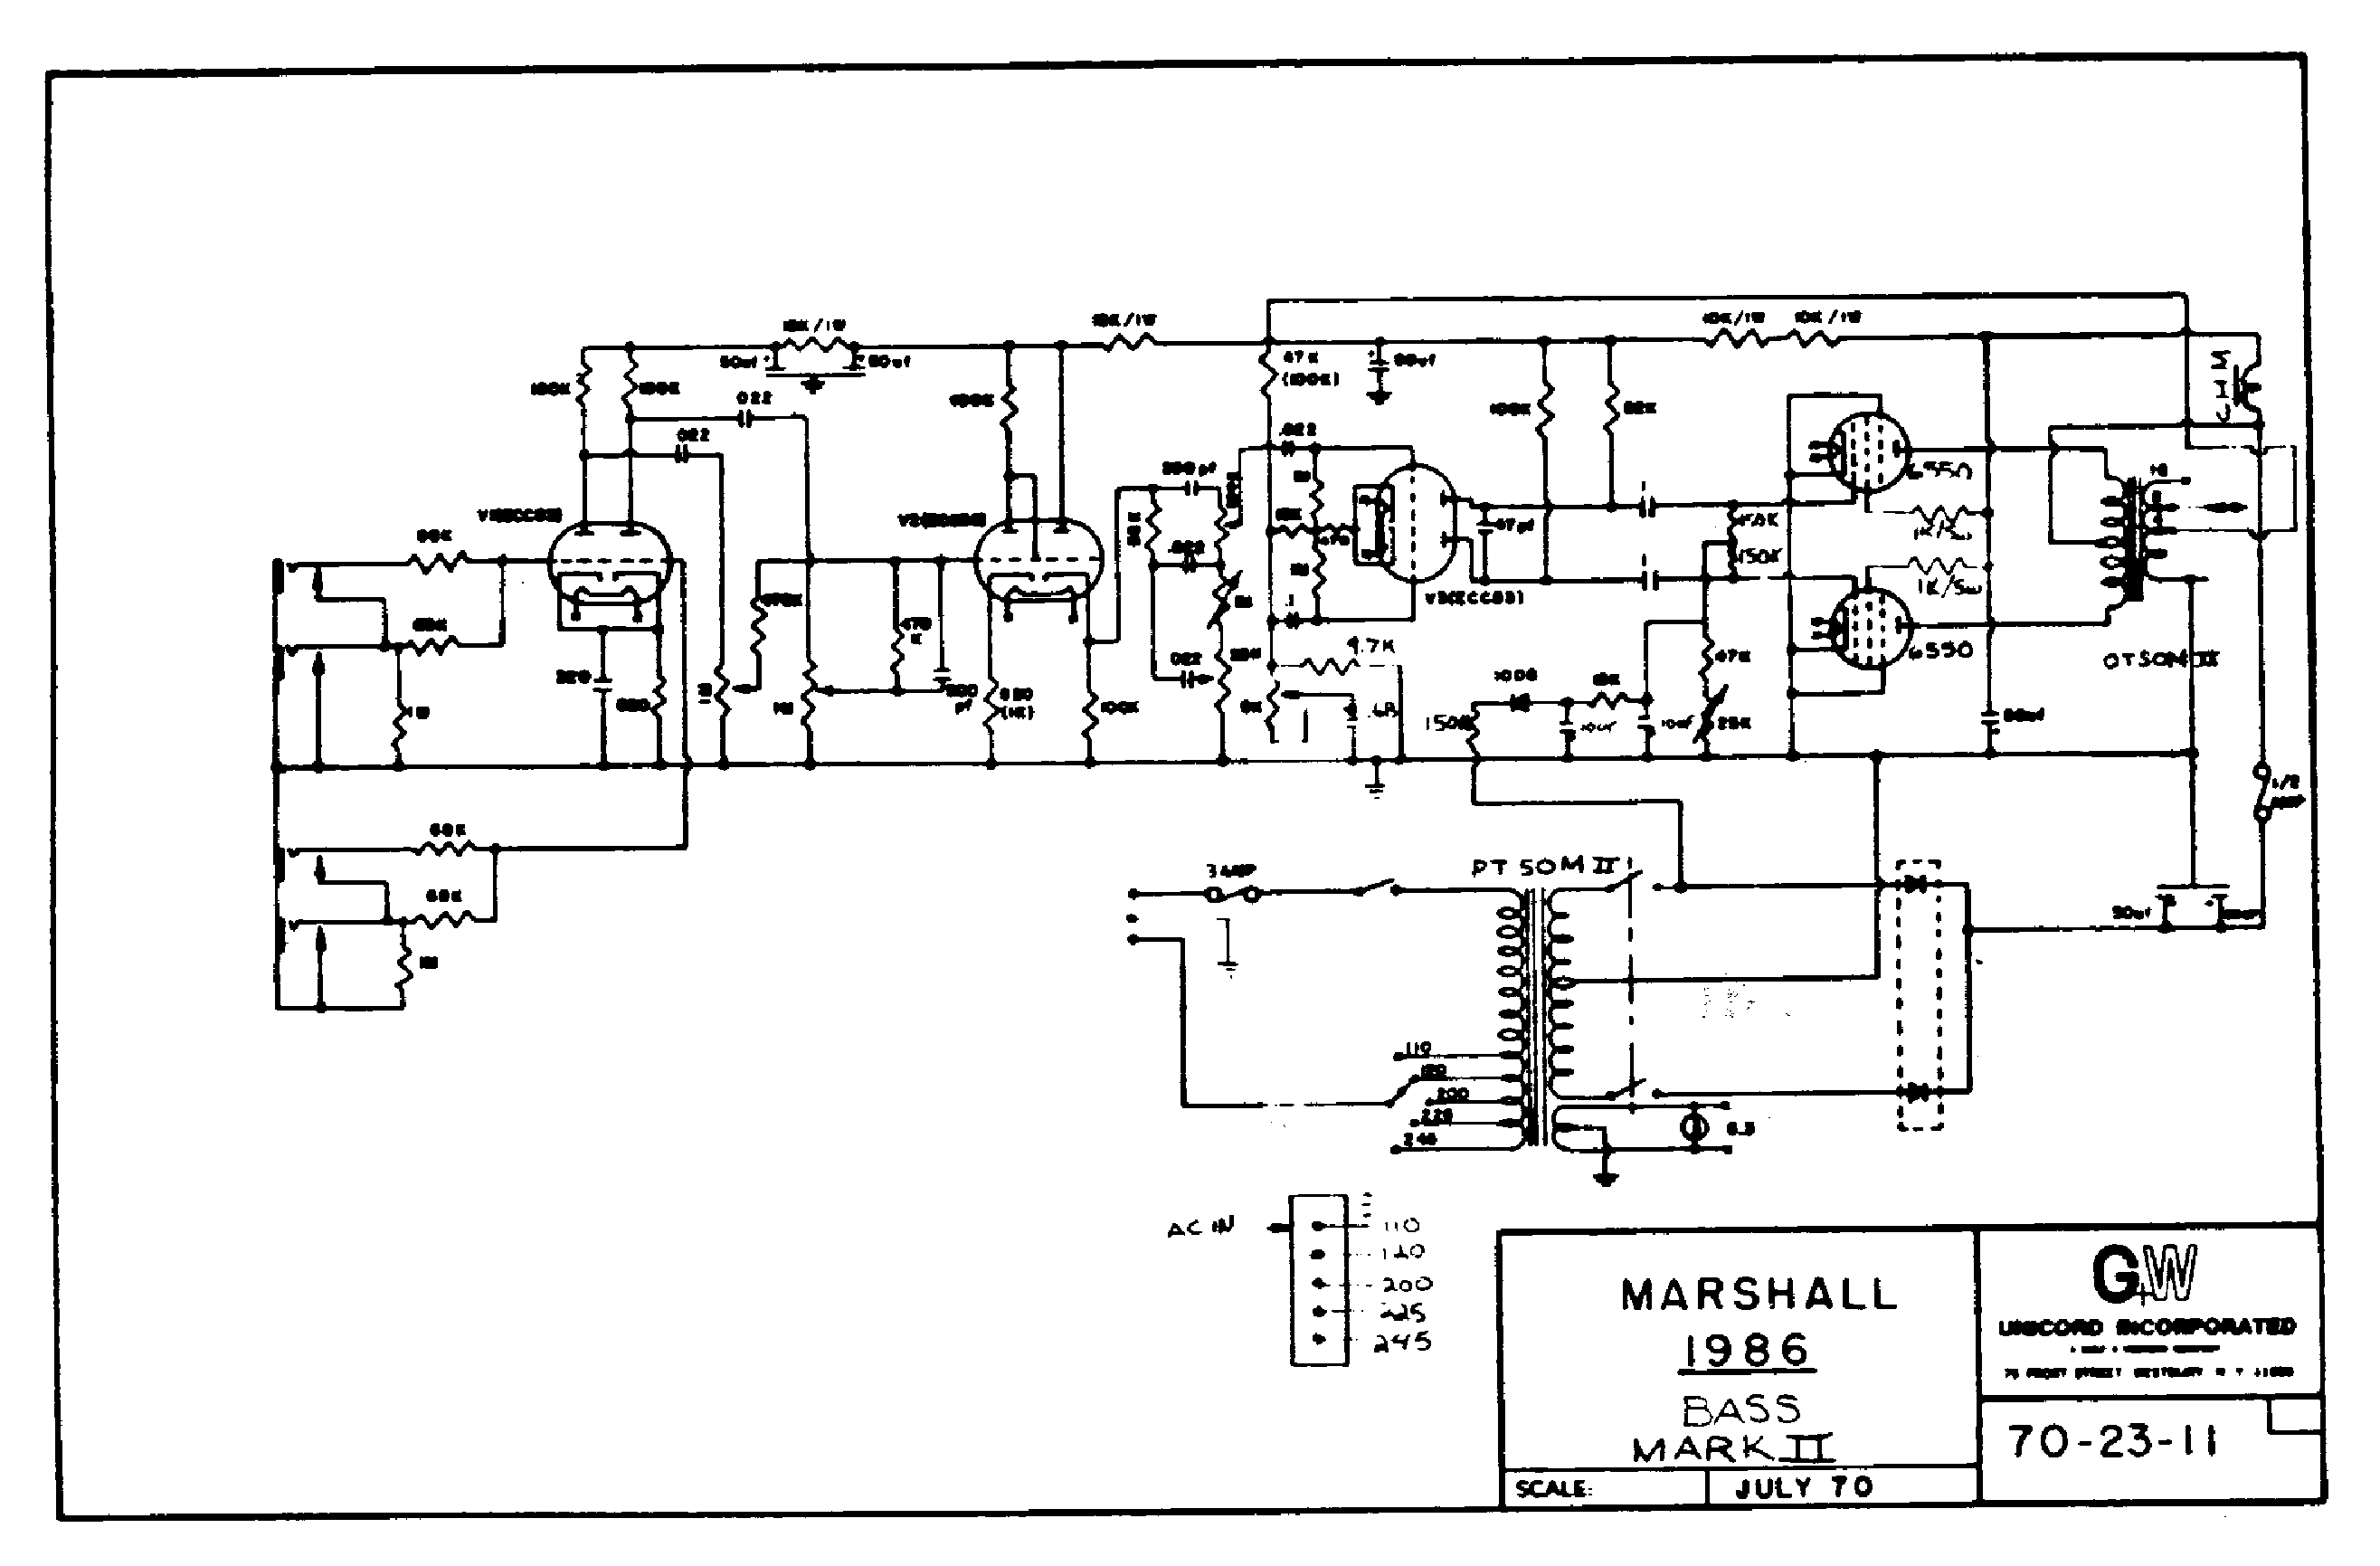 marshall wiring diagram marshall 2061 wiring diagram wiring diagram and schematic kam cdc 101 piezoelectric charge to digital converter